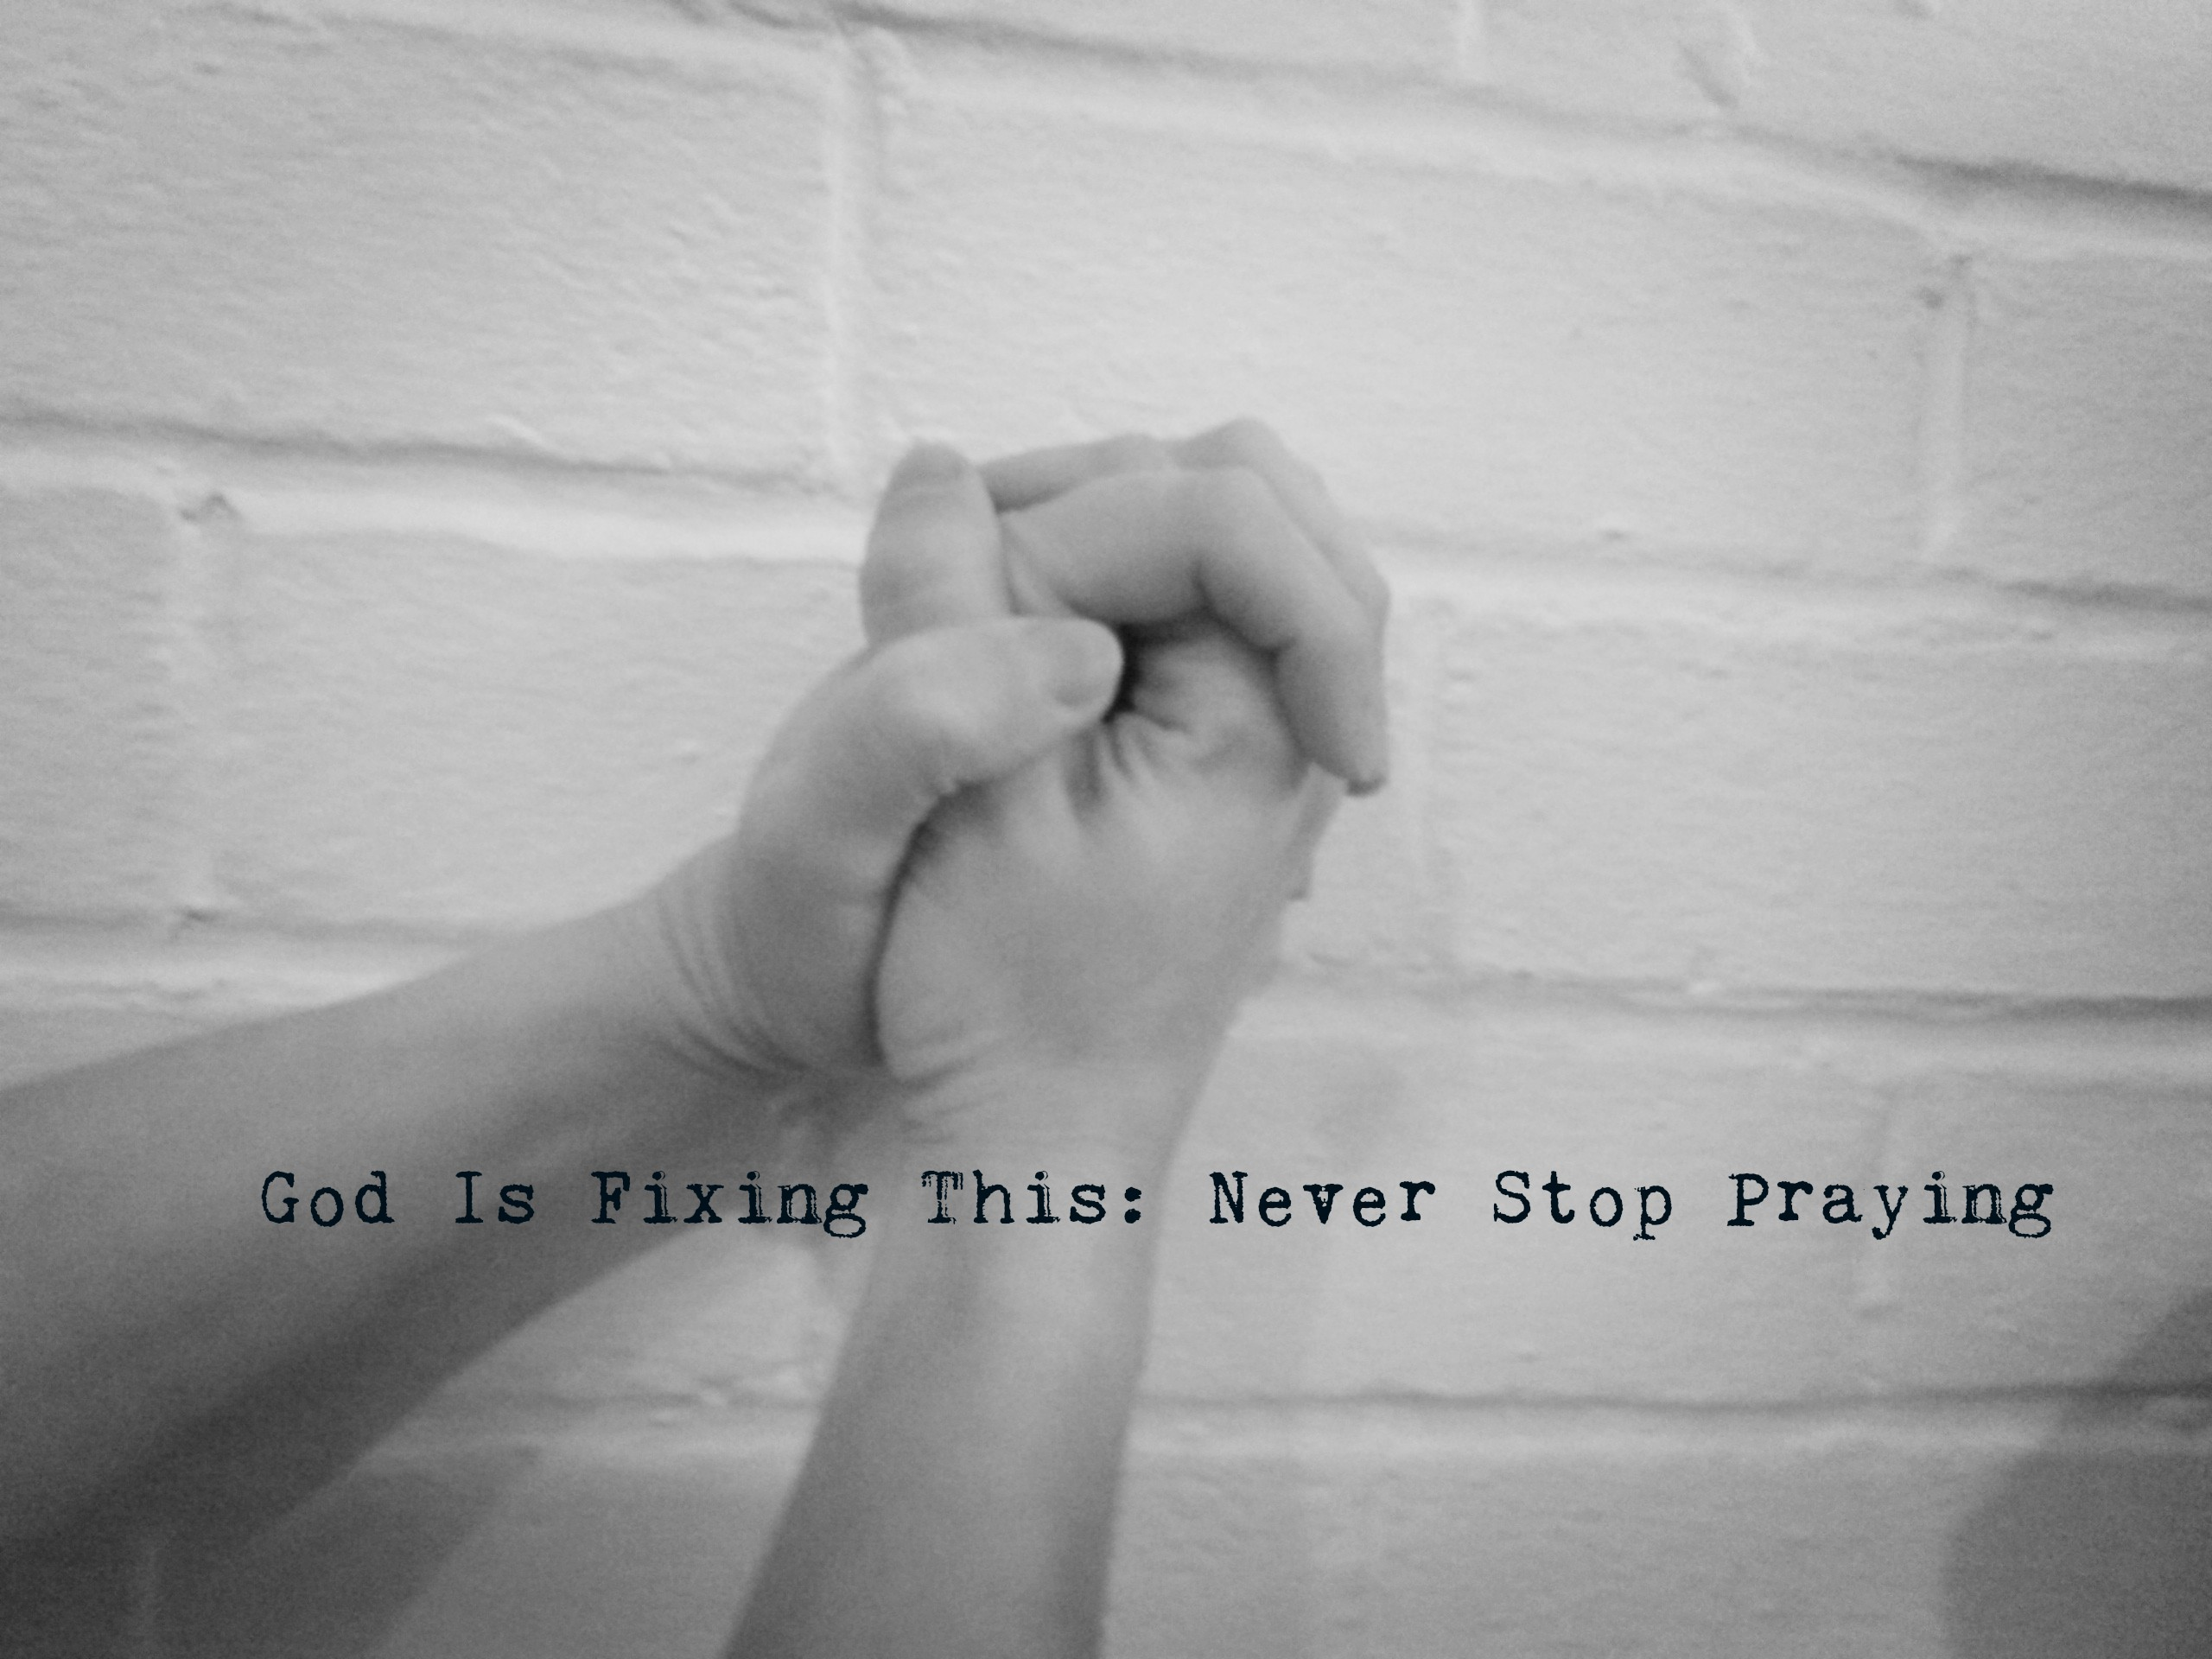 God Is Fixing This: Never Stop Praying